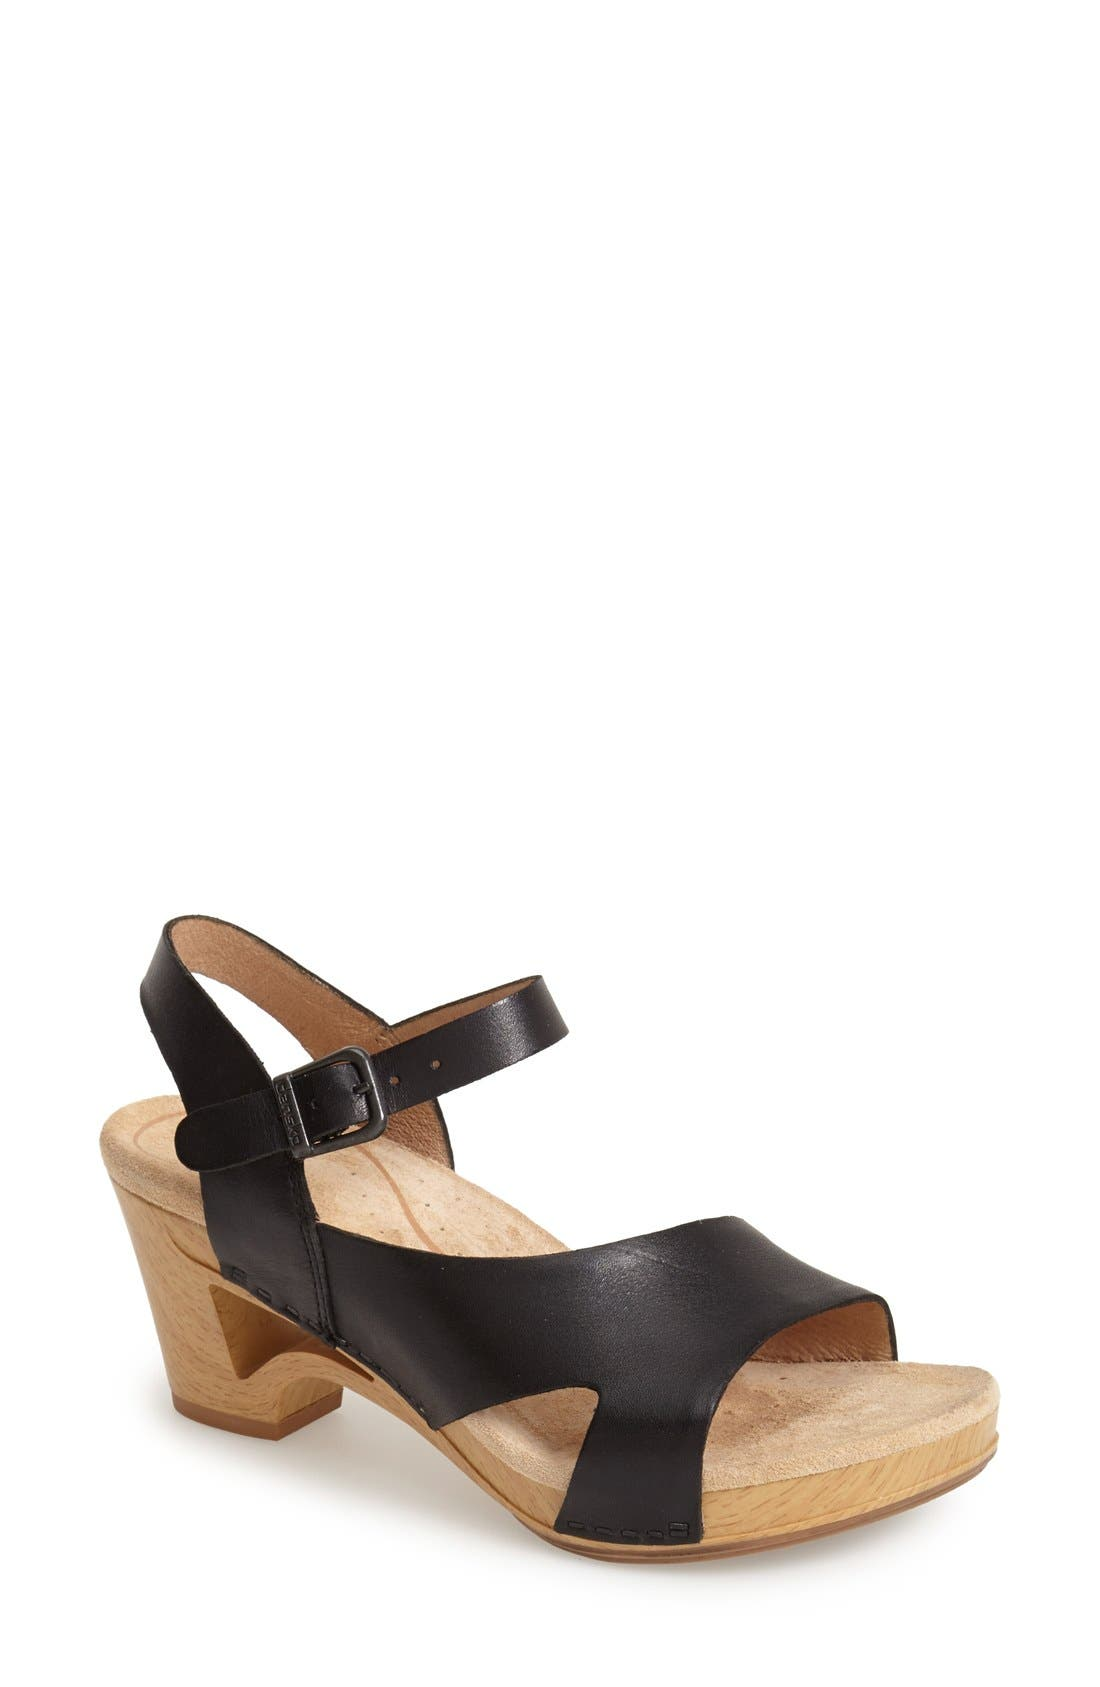 Alternate Image 1 Selected - Dansko 'Tasha' Sandal